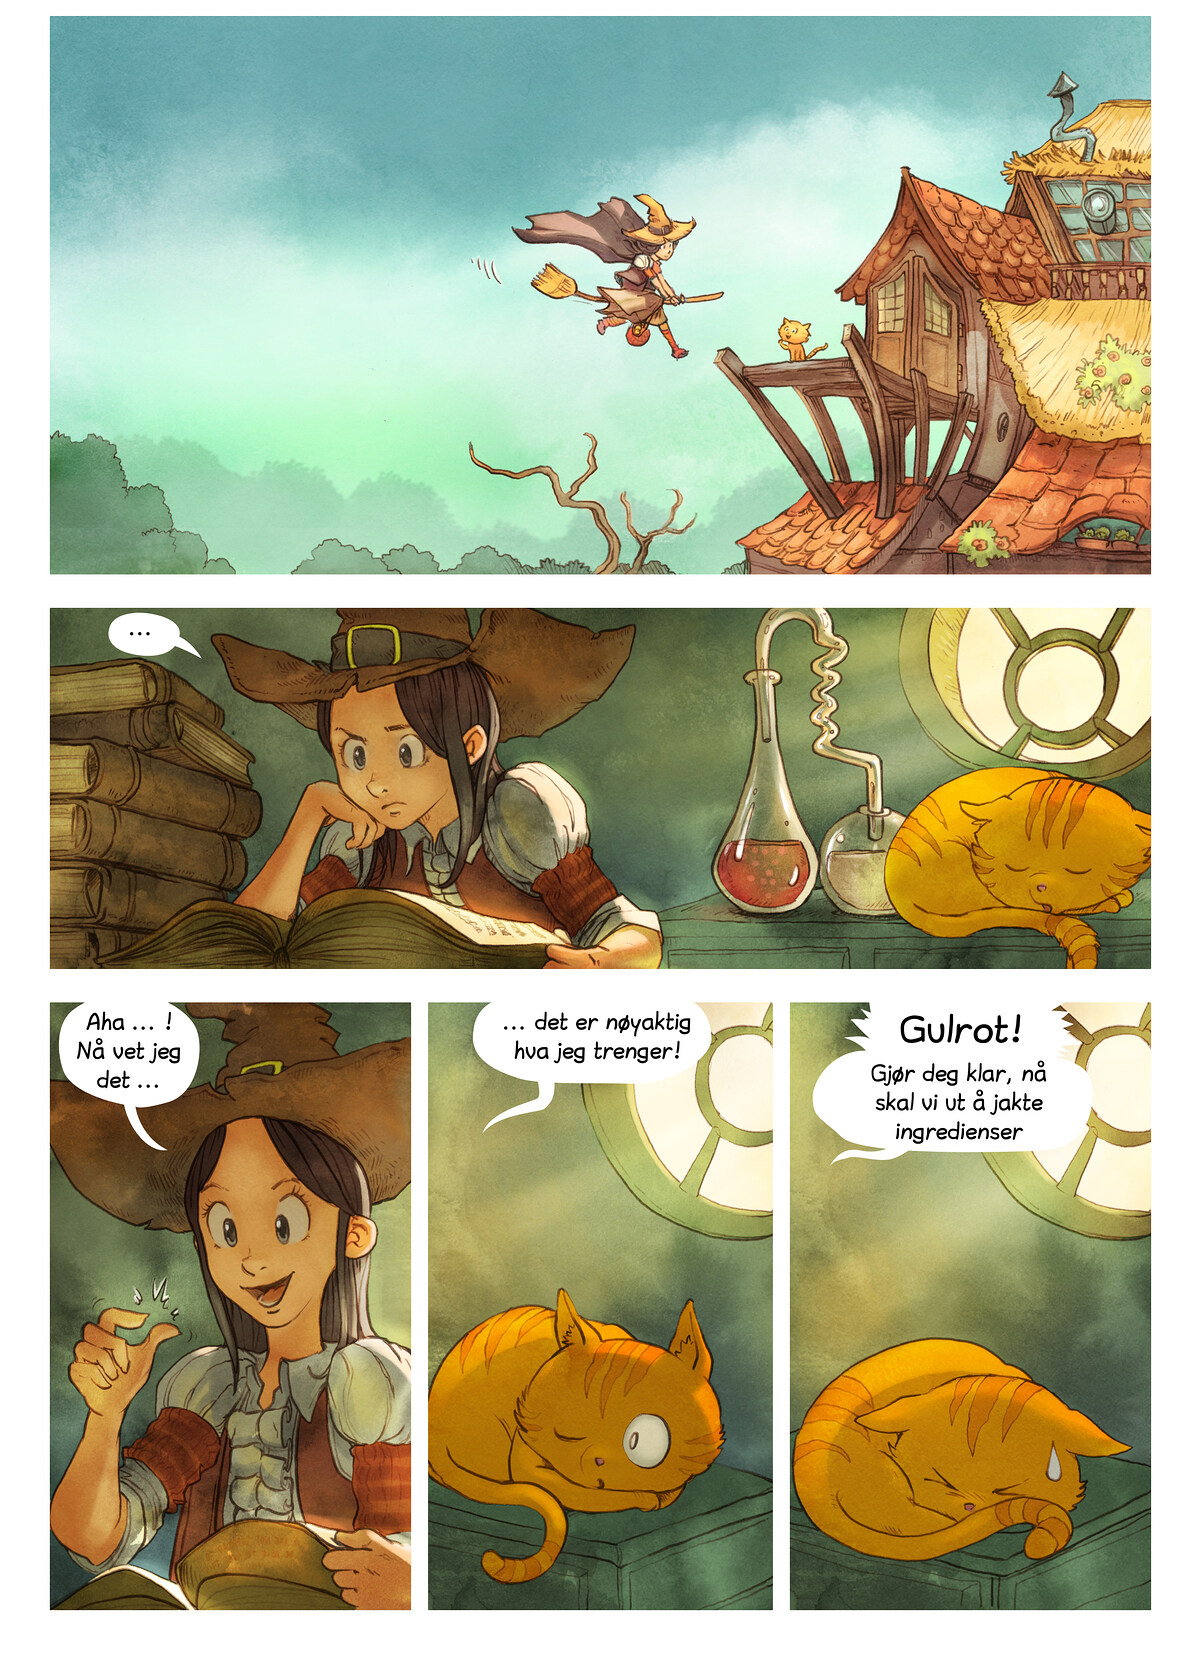 A webcomic page of Pepper&Carrot, episode 3 [no], side 4